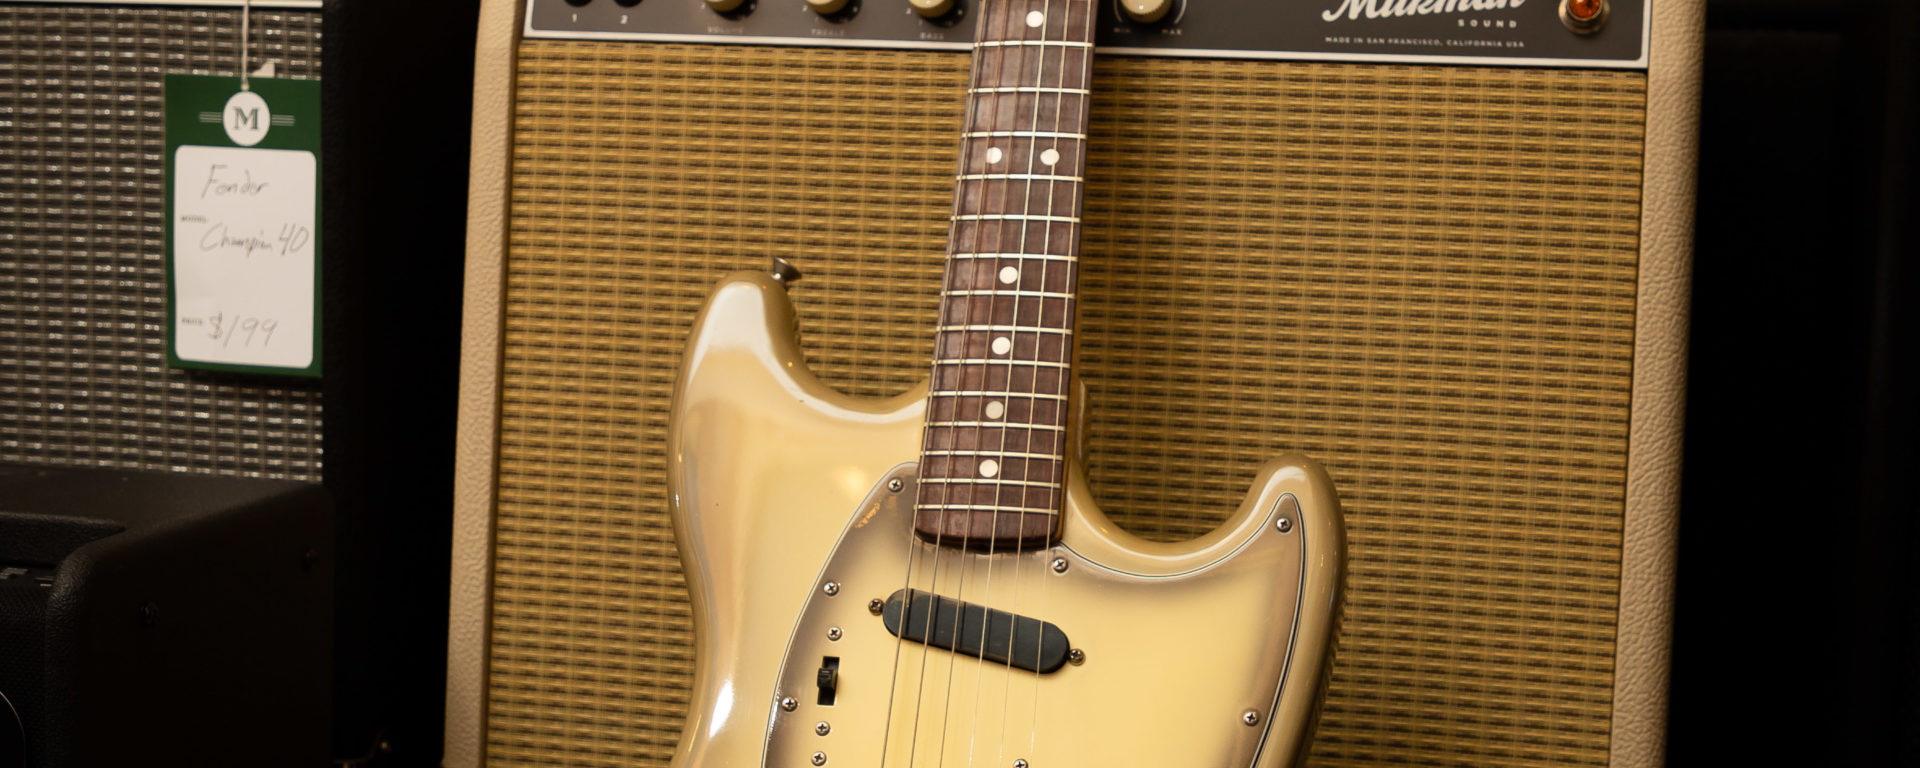 Fender Electric Guitars - 1978 Mustang Antigua